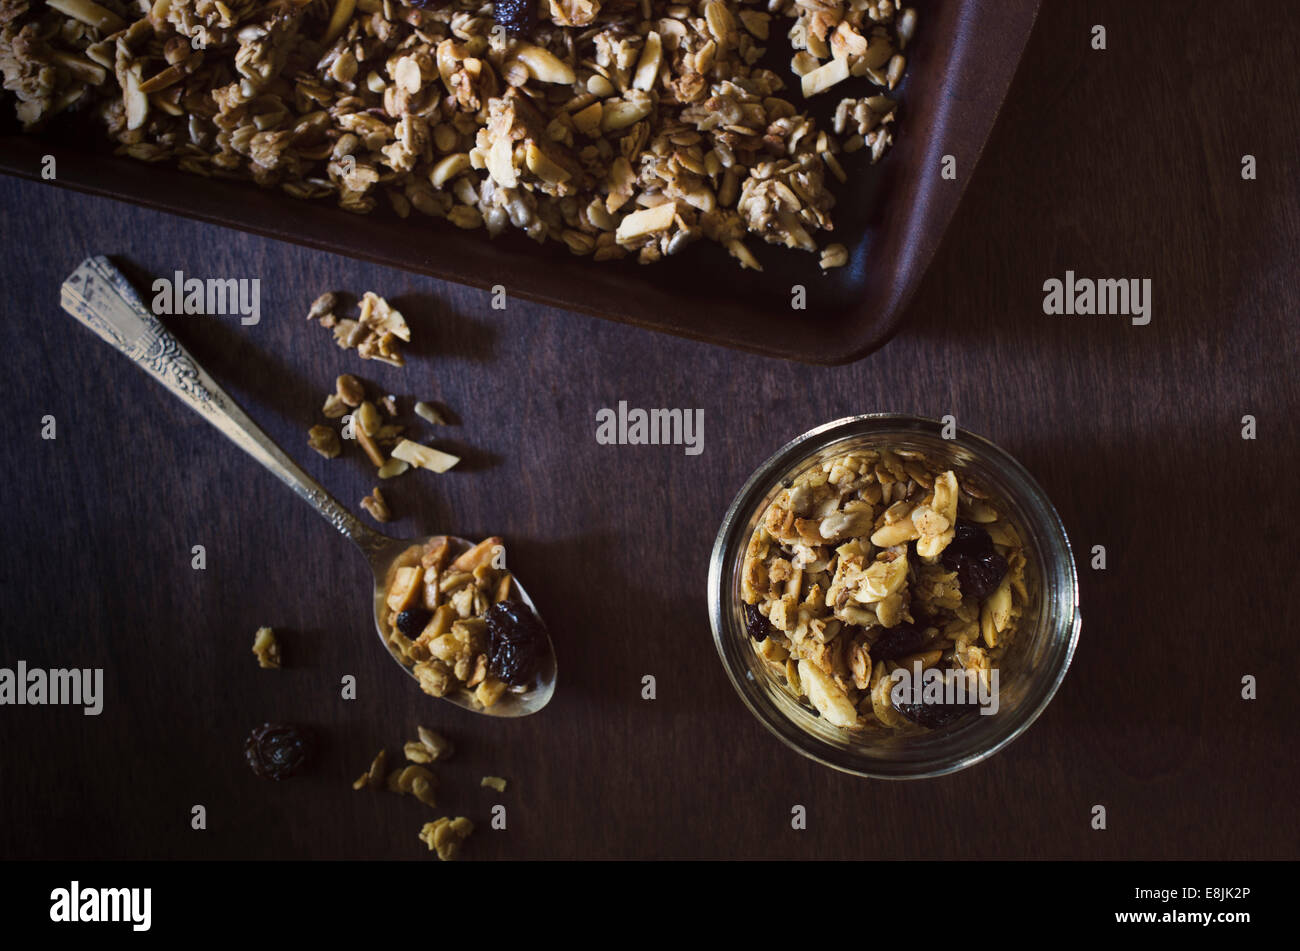 Home made Granola - Stock Image